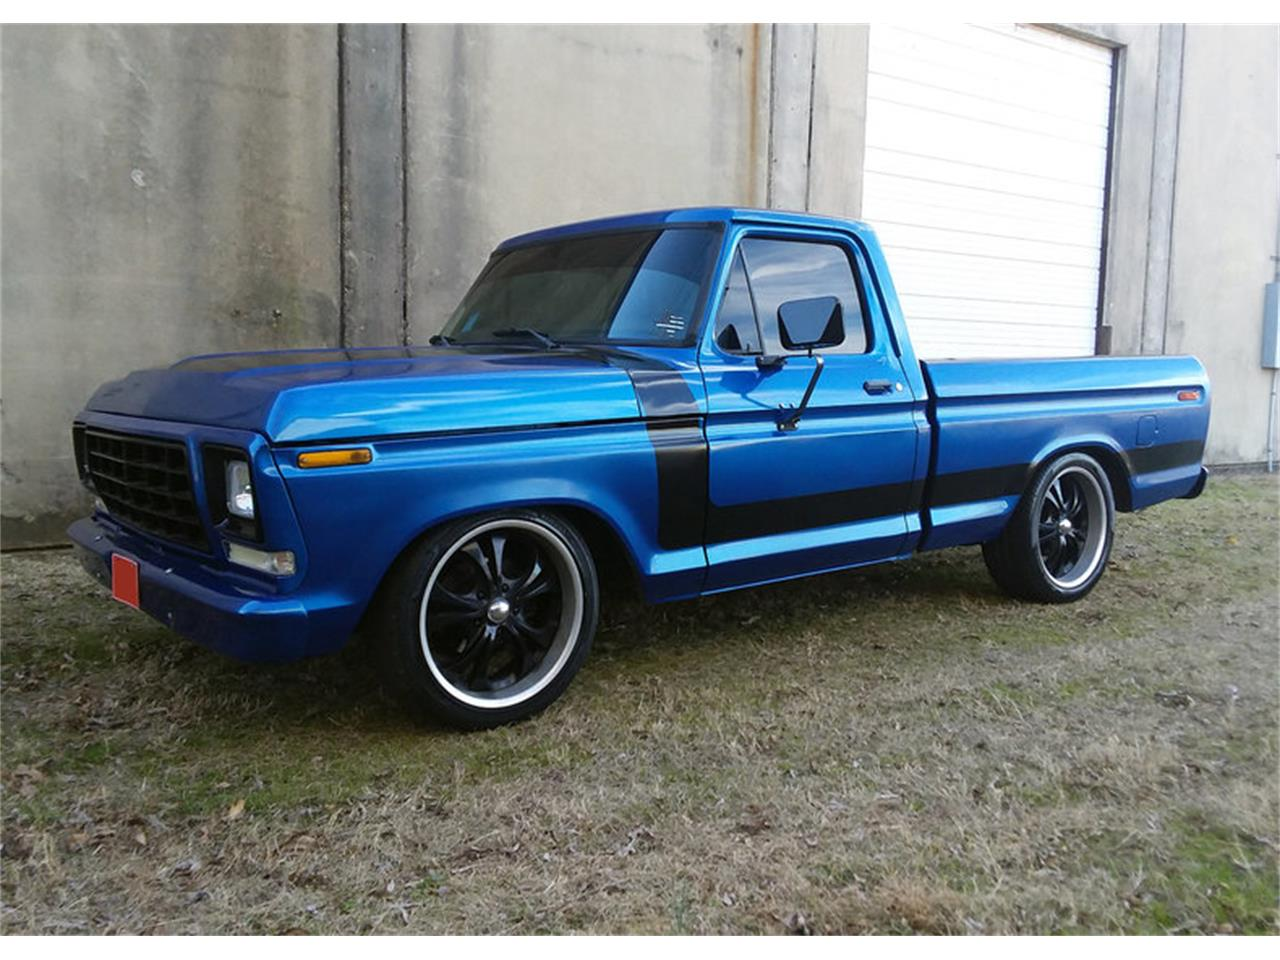 Large picture of 79 f100 mrlh